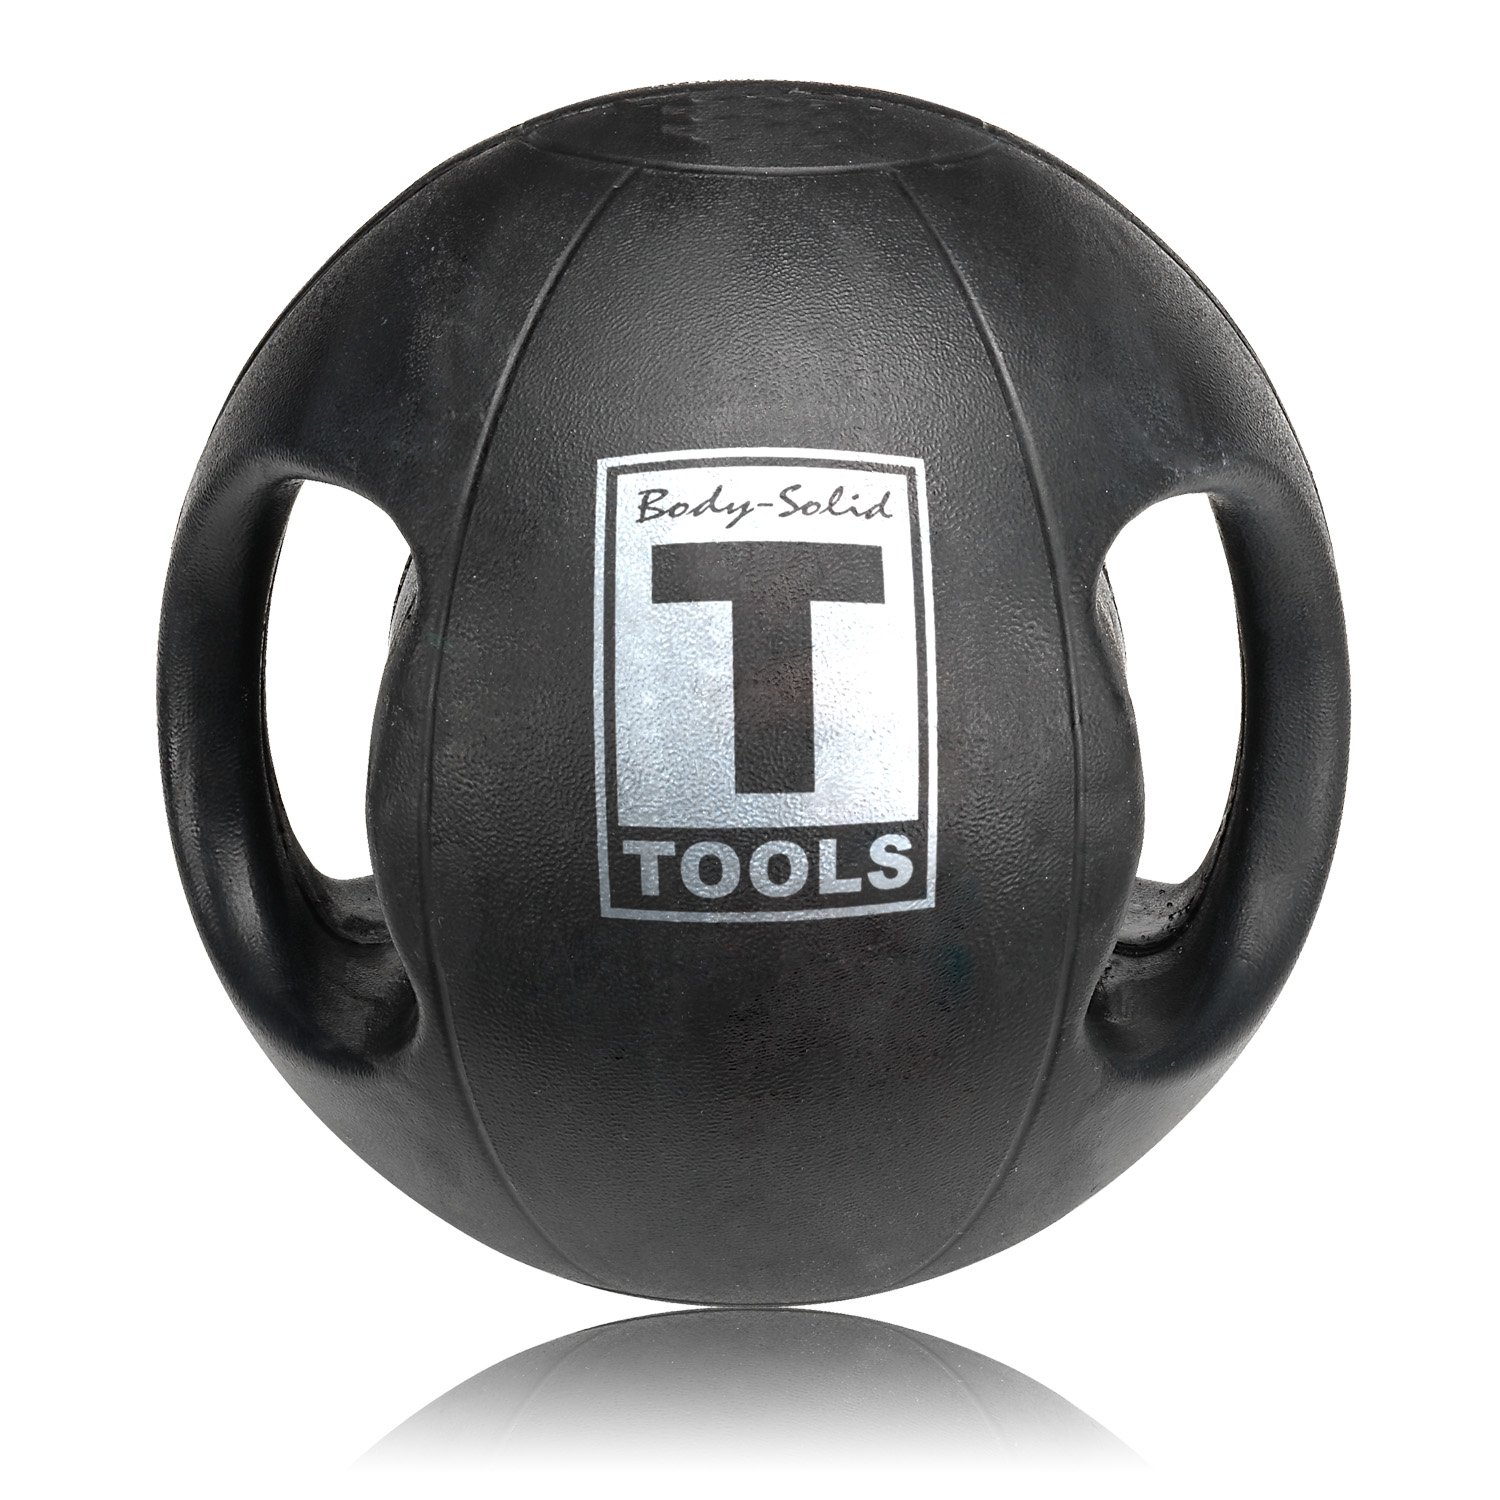 Body Solid Tools BSTDMB25 Dual Grip 25 lb Medicine Ball by Body-Solid